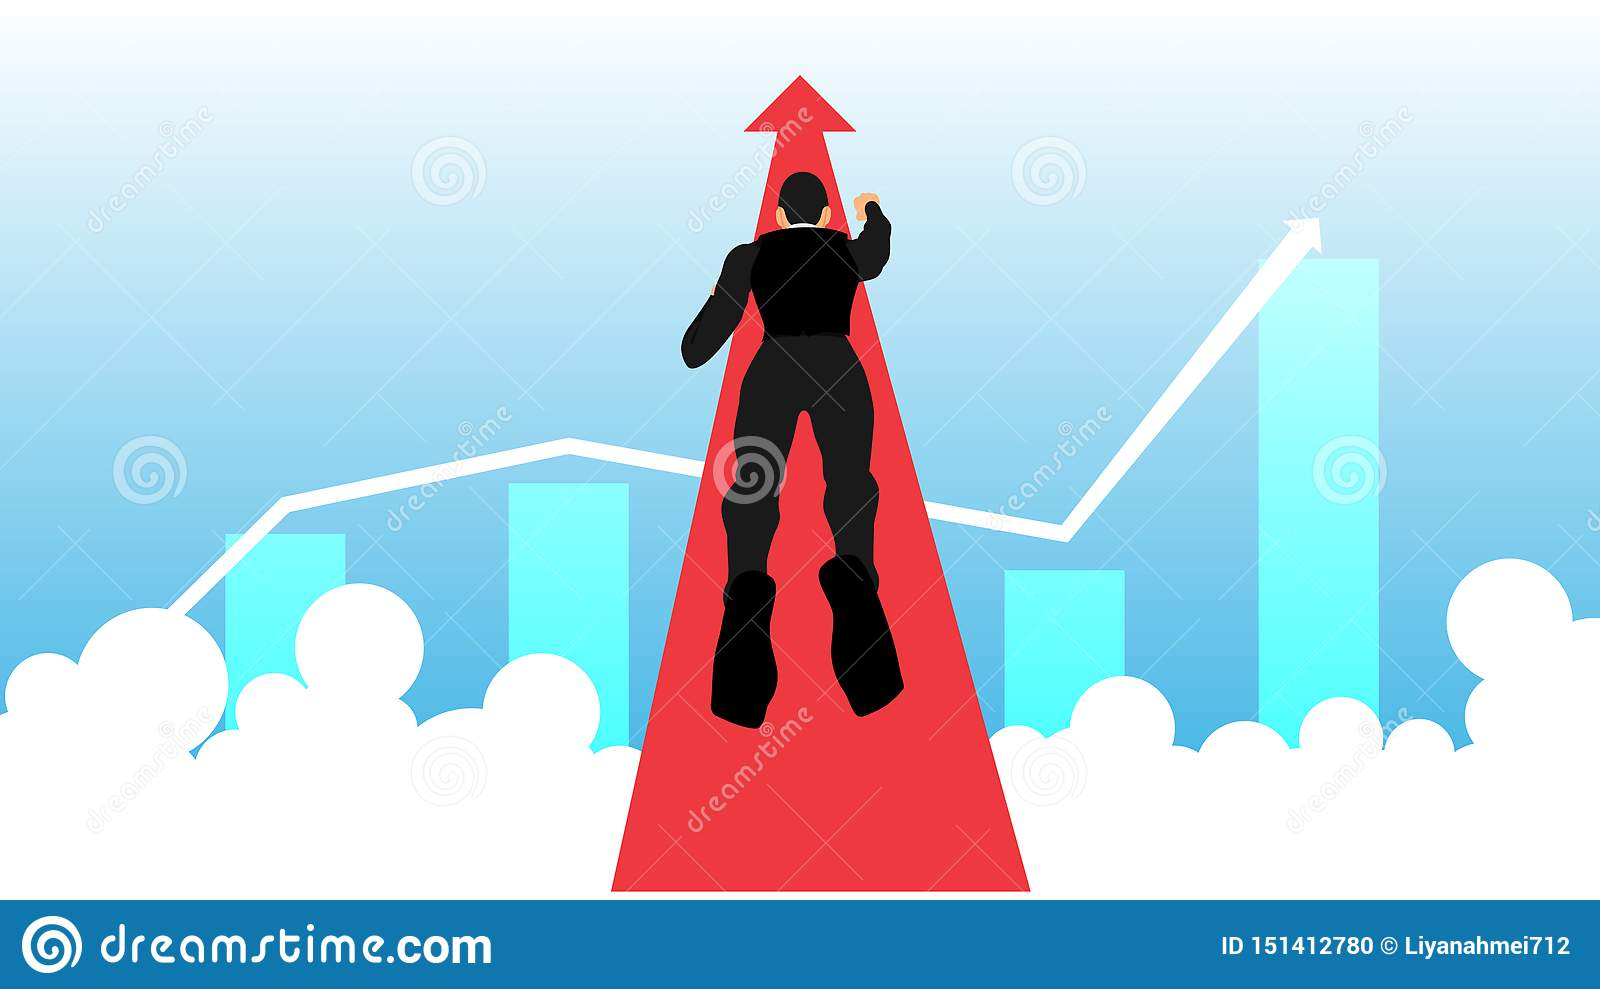 Illustration of a flying businessman heading for success